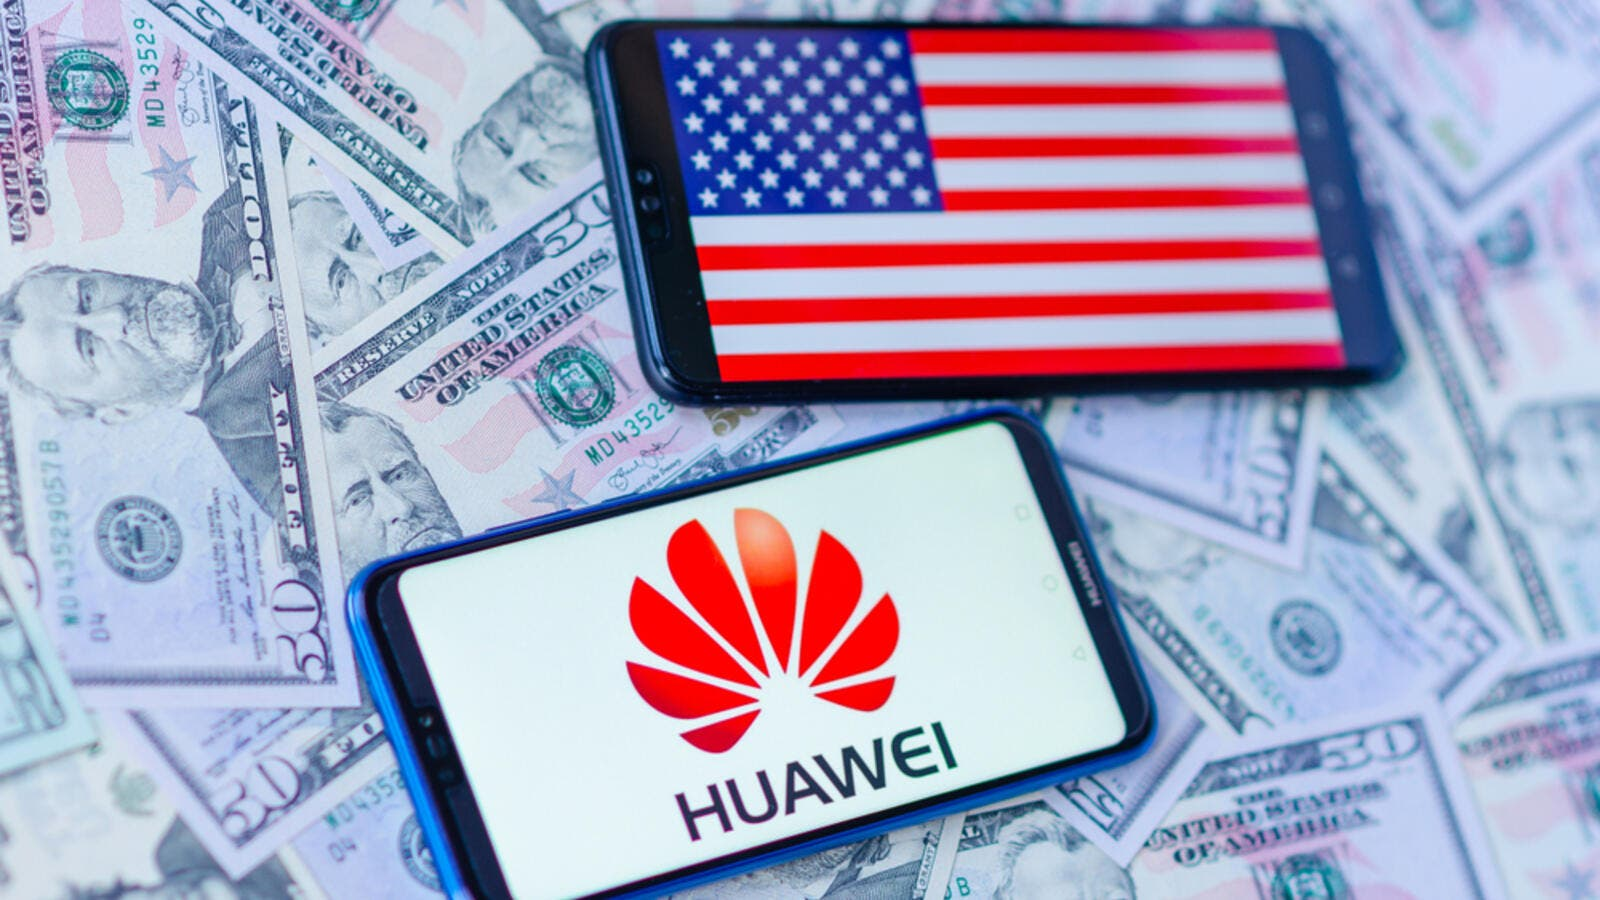 US government agencies have already been banned from buying equipment from Huawei.